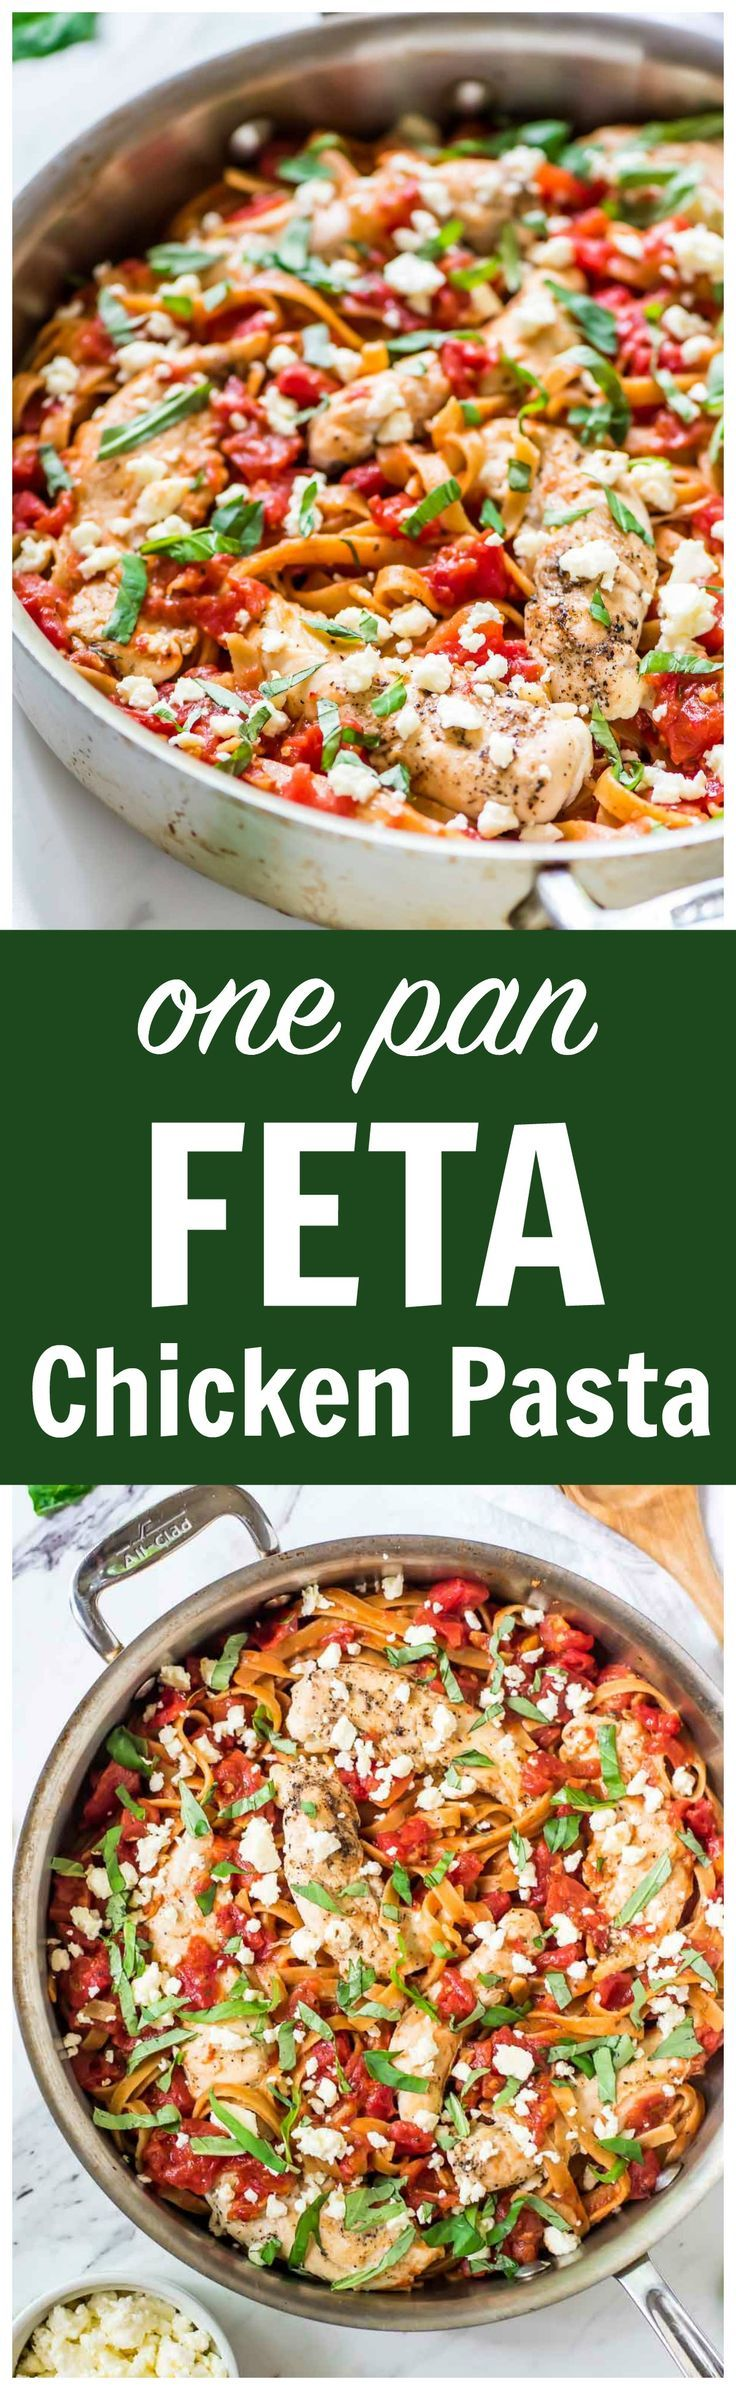 ONE PAN Feta Chicken Pasta Skillet – Only 5 ingredients! Everything cooks in one pan, including the pasta. EASY, delicious, and ready in less than 30 minutes! Recipe at wellplated.com @Well Plated